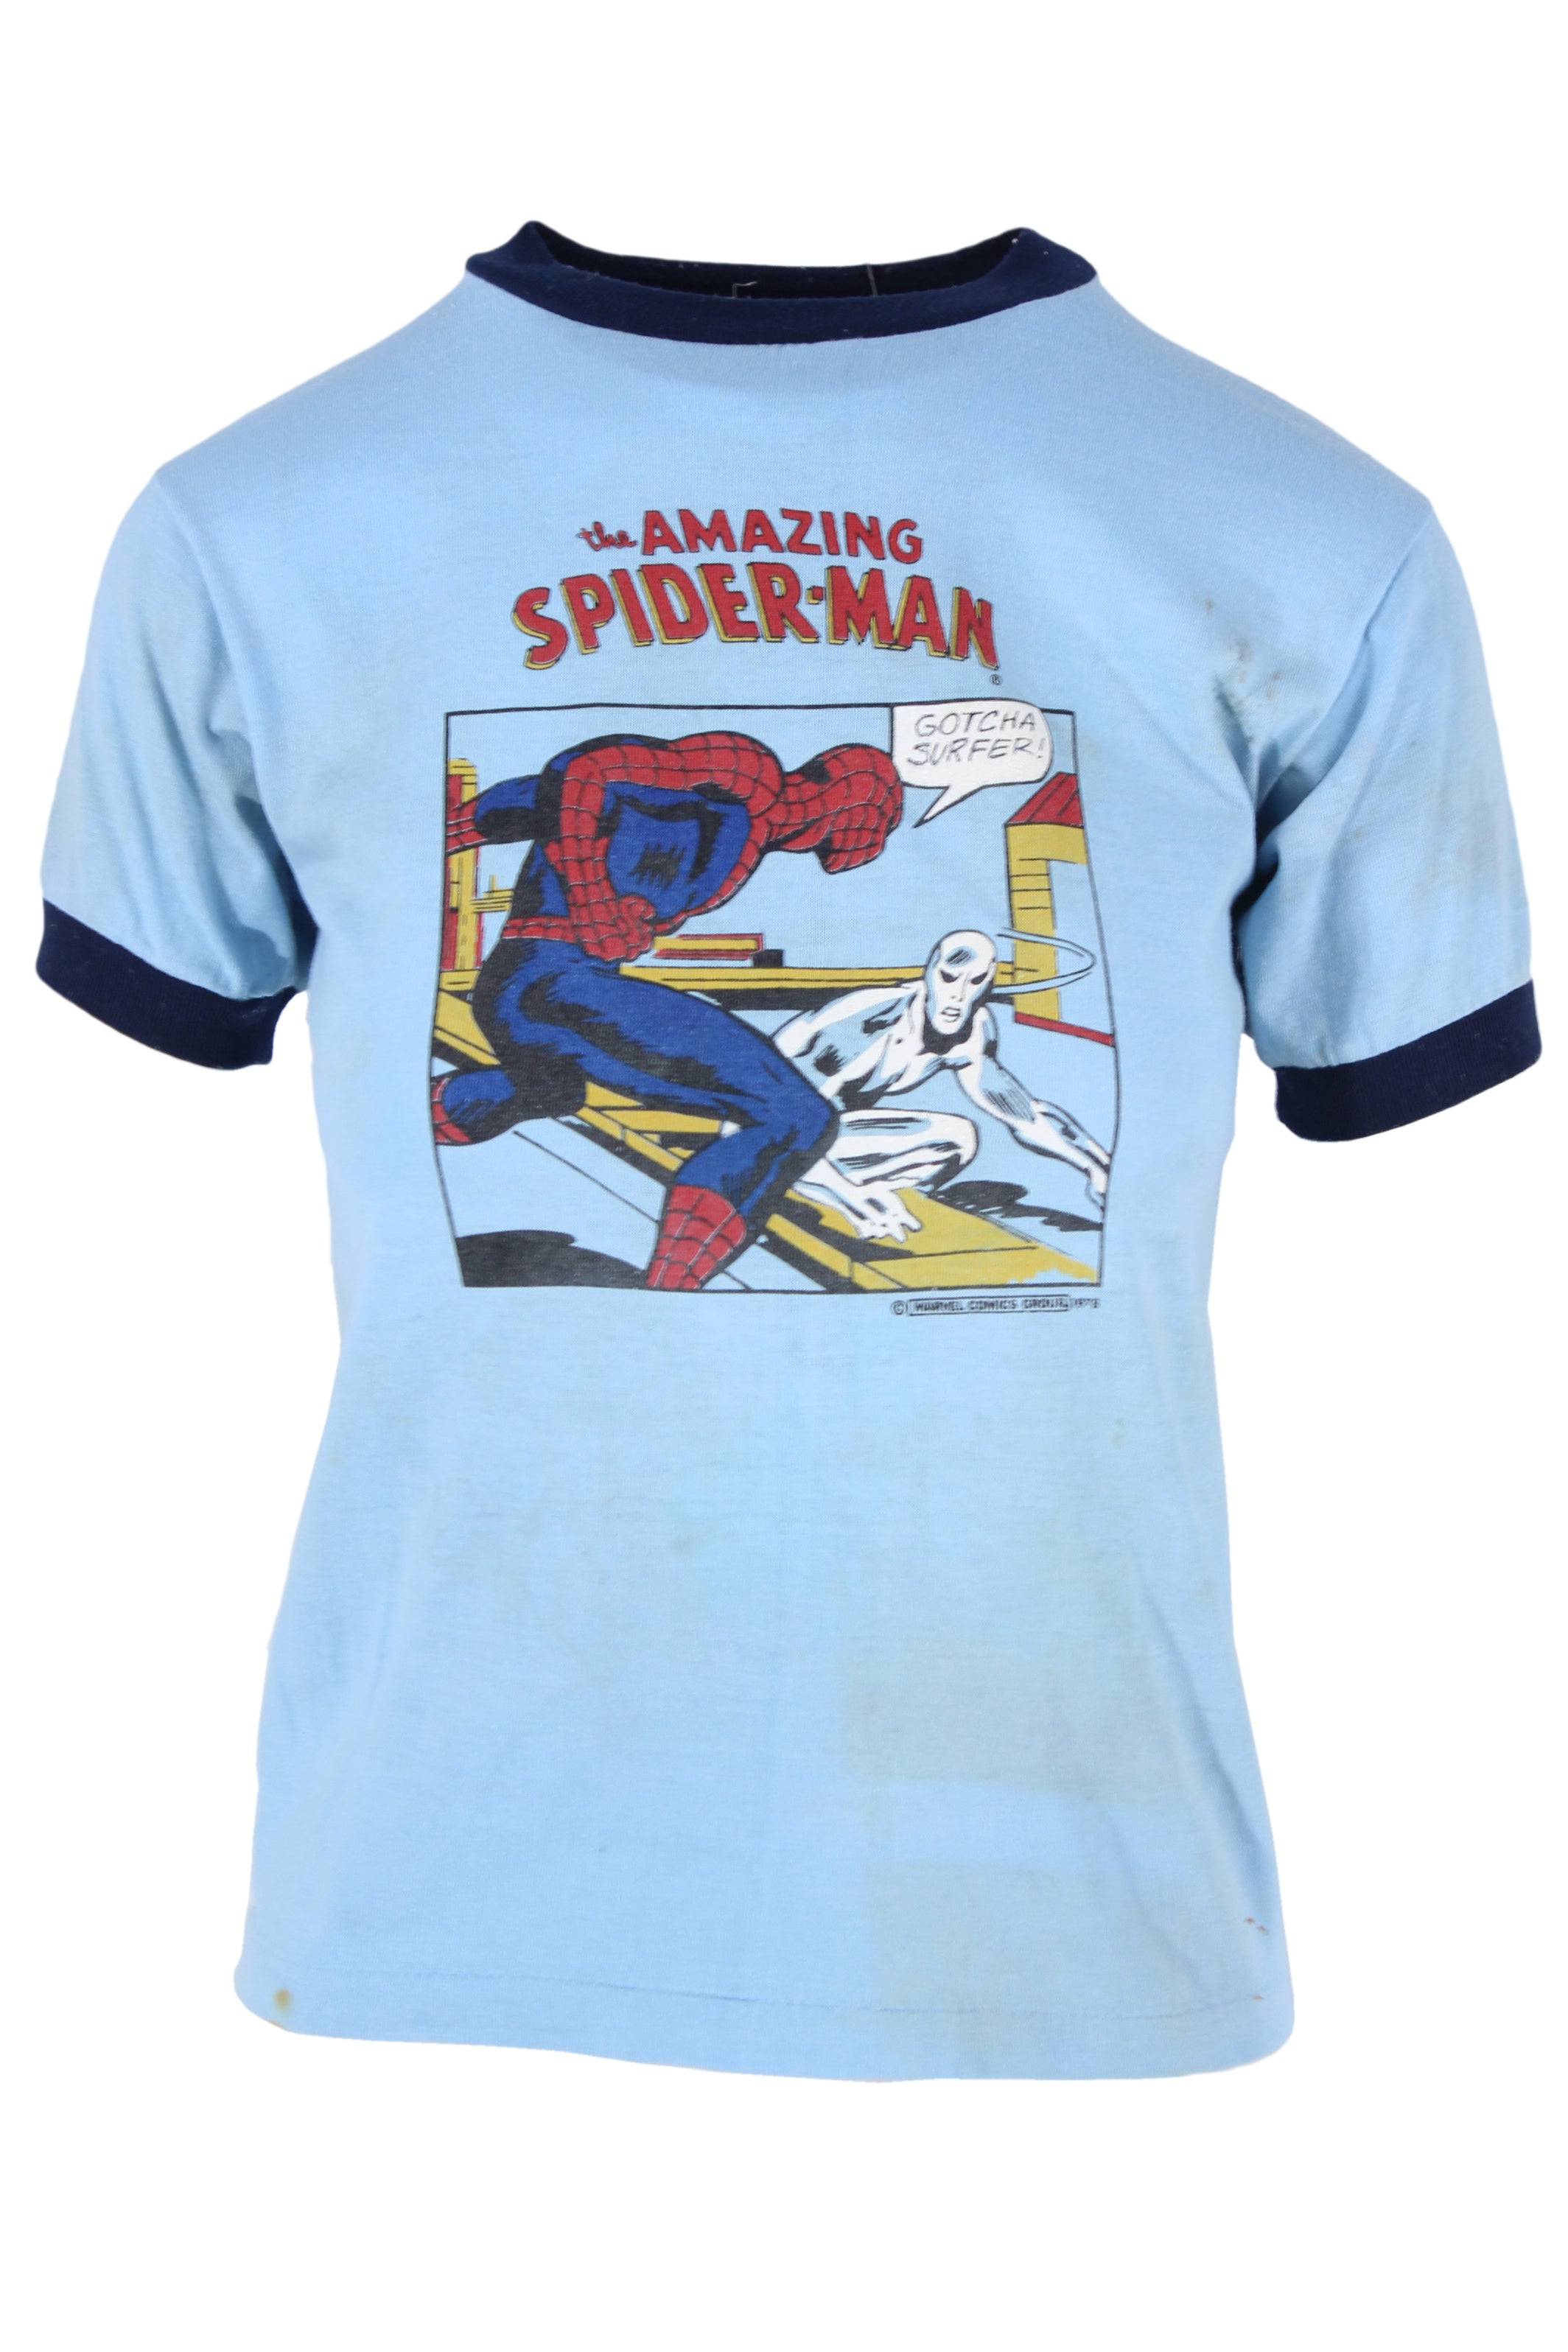 vintage blue 1978 spiderman ringer graphic tee. features marvel comic graphic. staining & discoloration throughout - please see pictures.